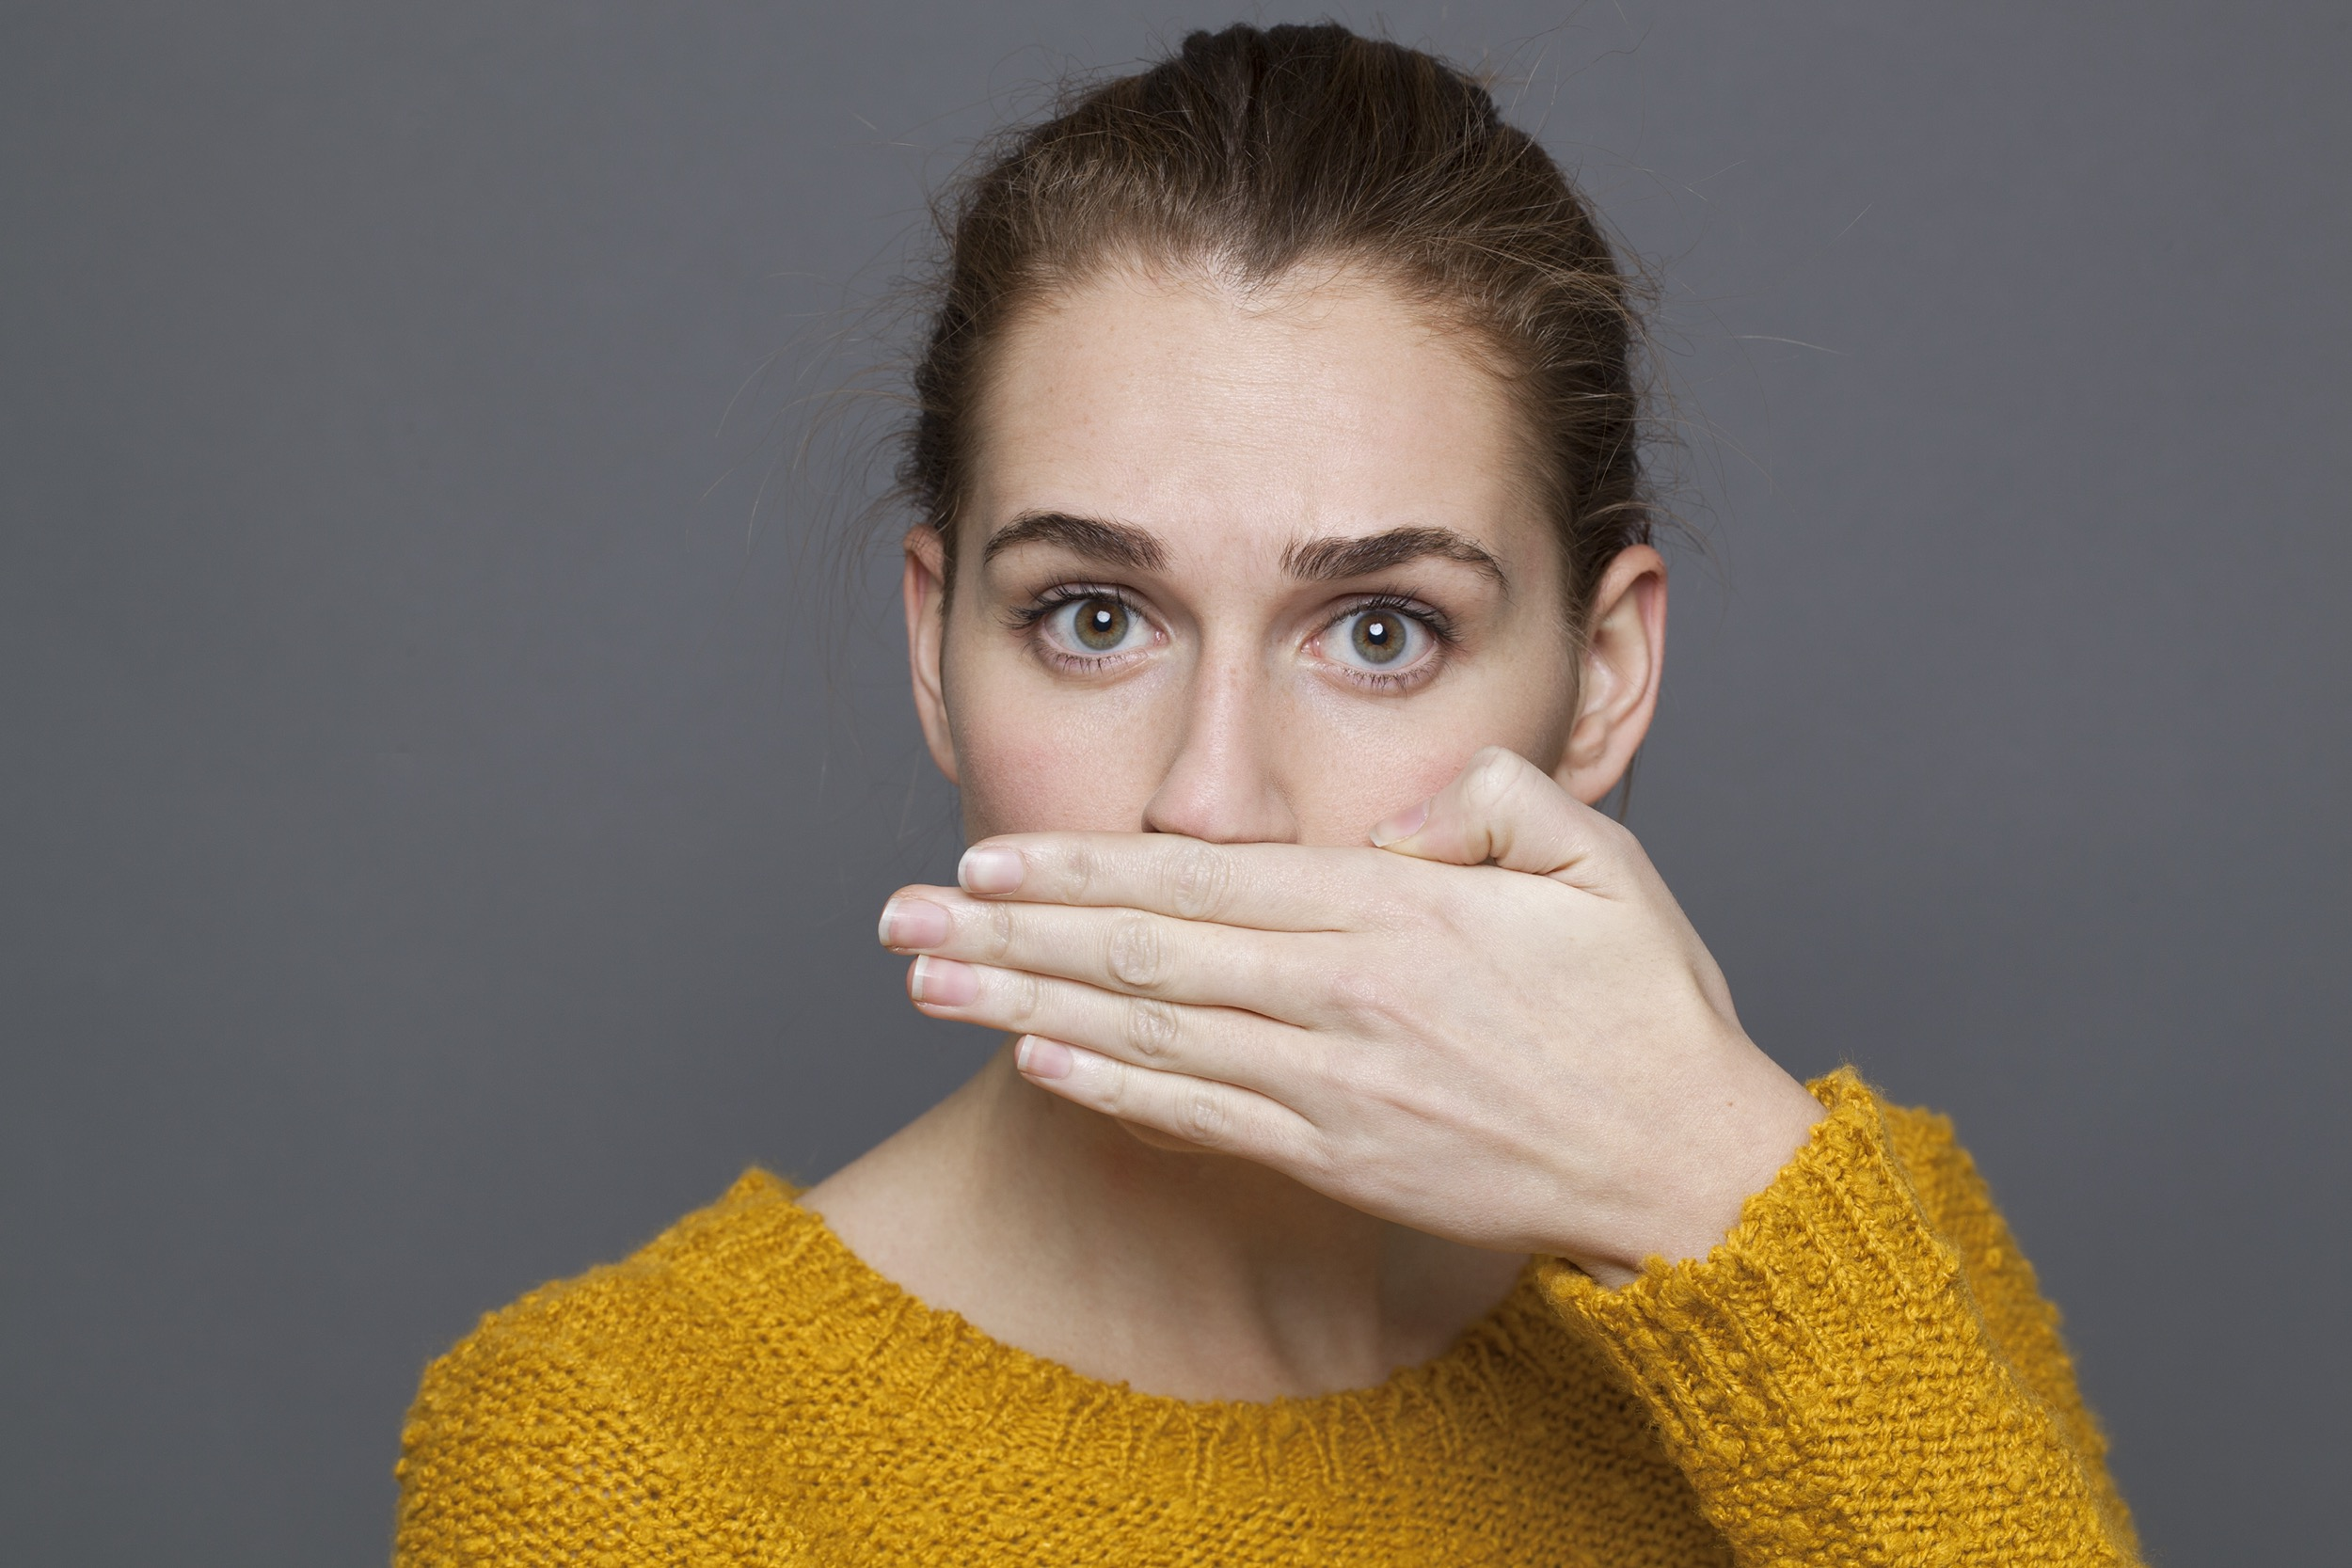 Bad Breath Can be problematic